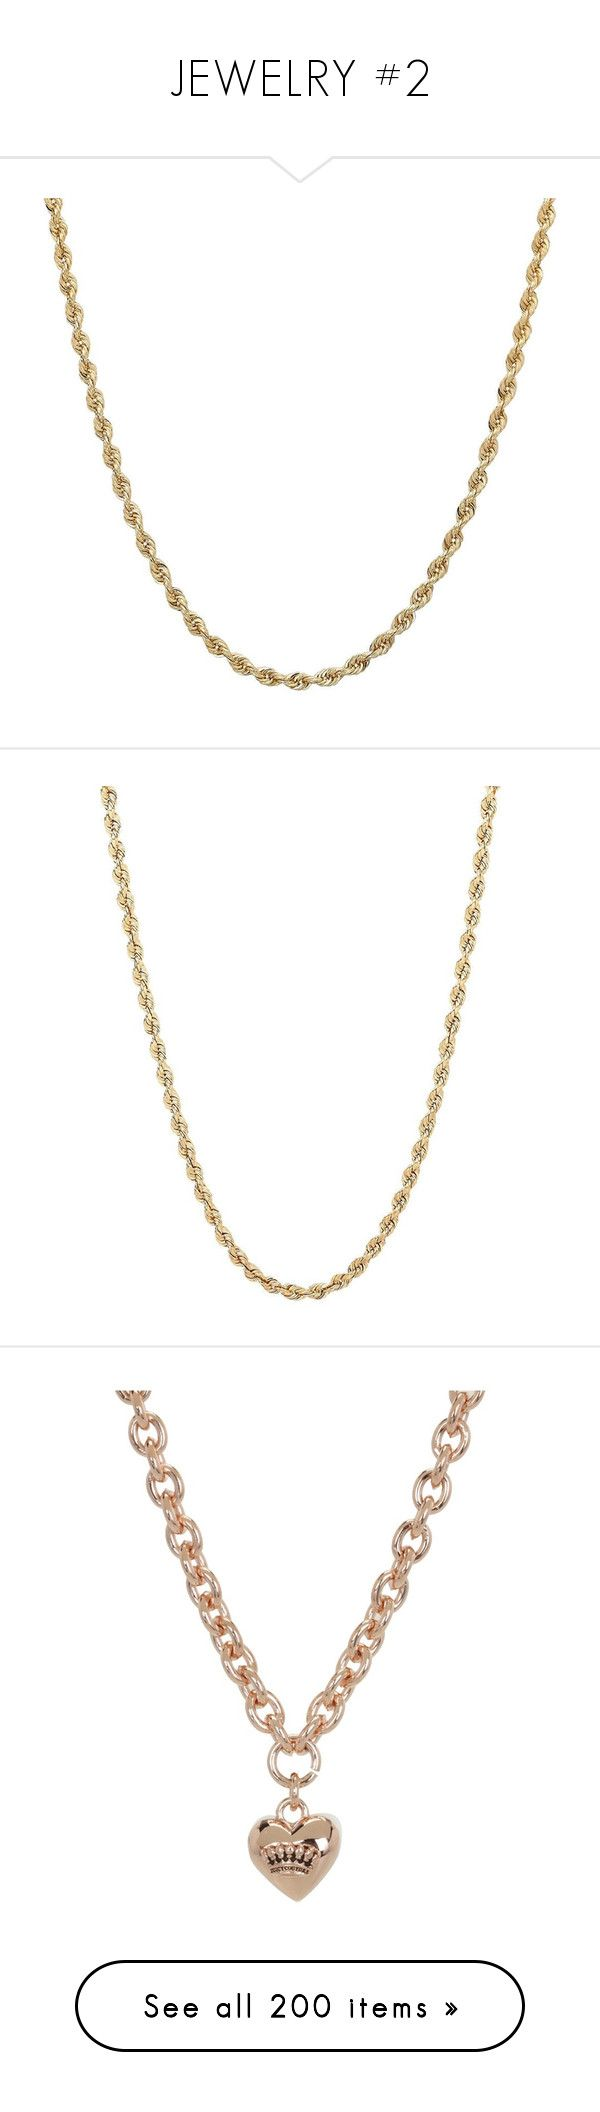 """""""JEWELRY #2"""" by theonlydej ❤ liked on Polyvore featuring jewelry, necklaces, gold, lobster clasp necklace, gold chain necklace, gold diamond necklace, yellow gold diamond necklace, diamond necklace, yellow gold necklace and gold rope chain necklace"""